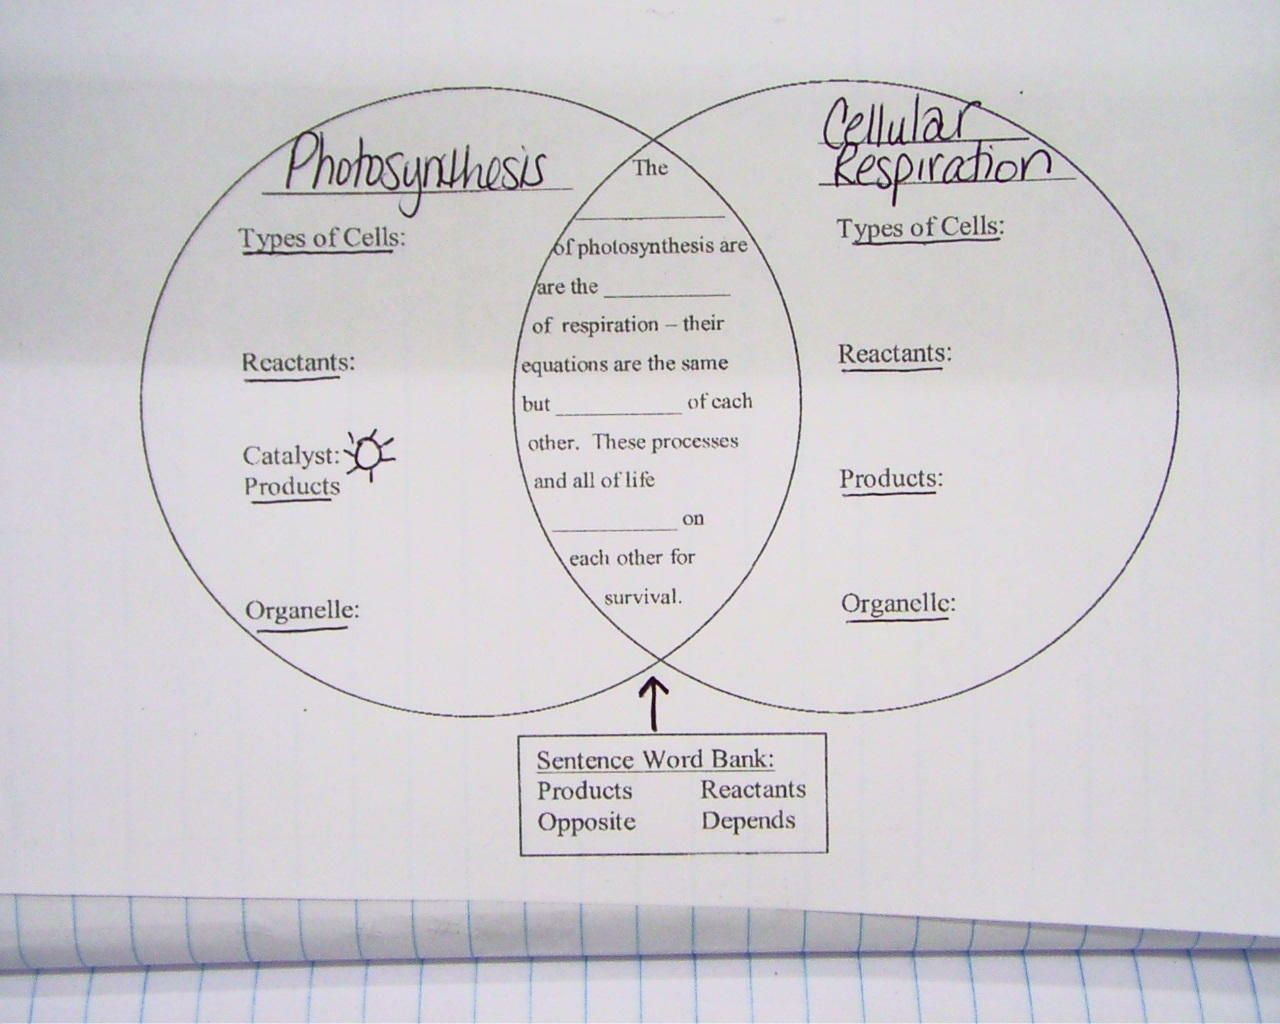 Cellular Respiration Diagram Worksheet – Cellular Respiration Diagram Worksheet